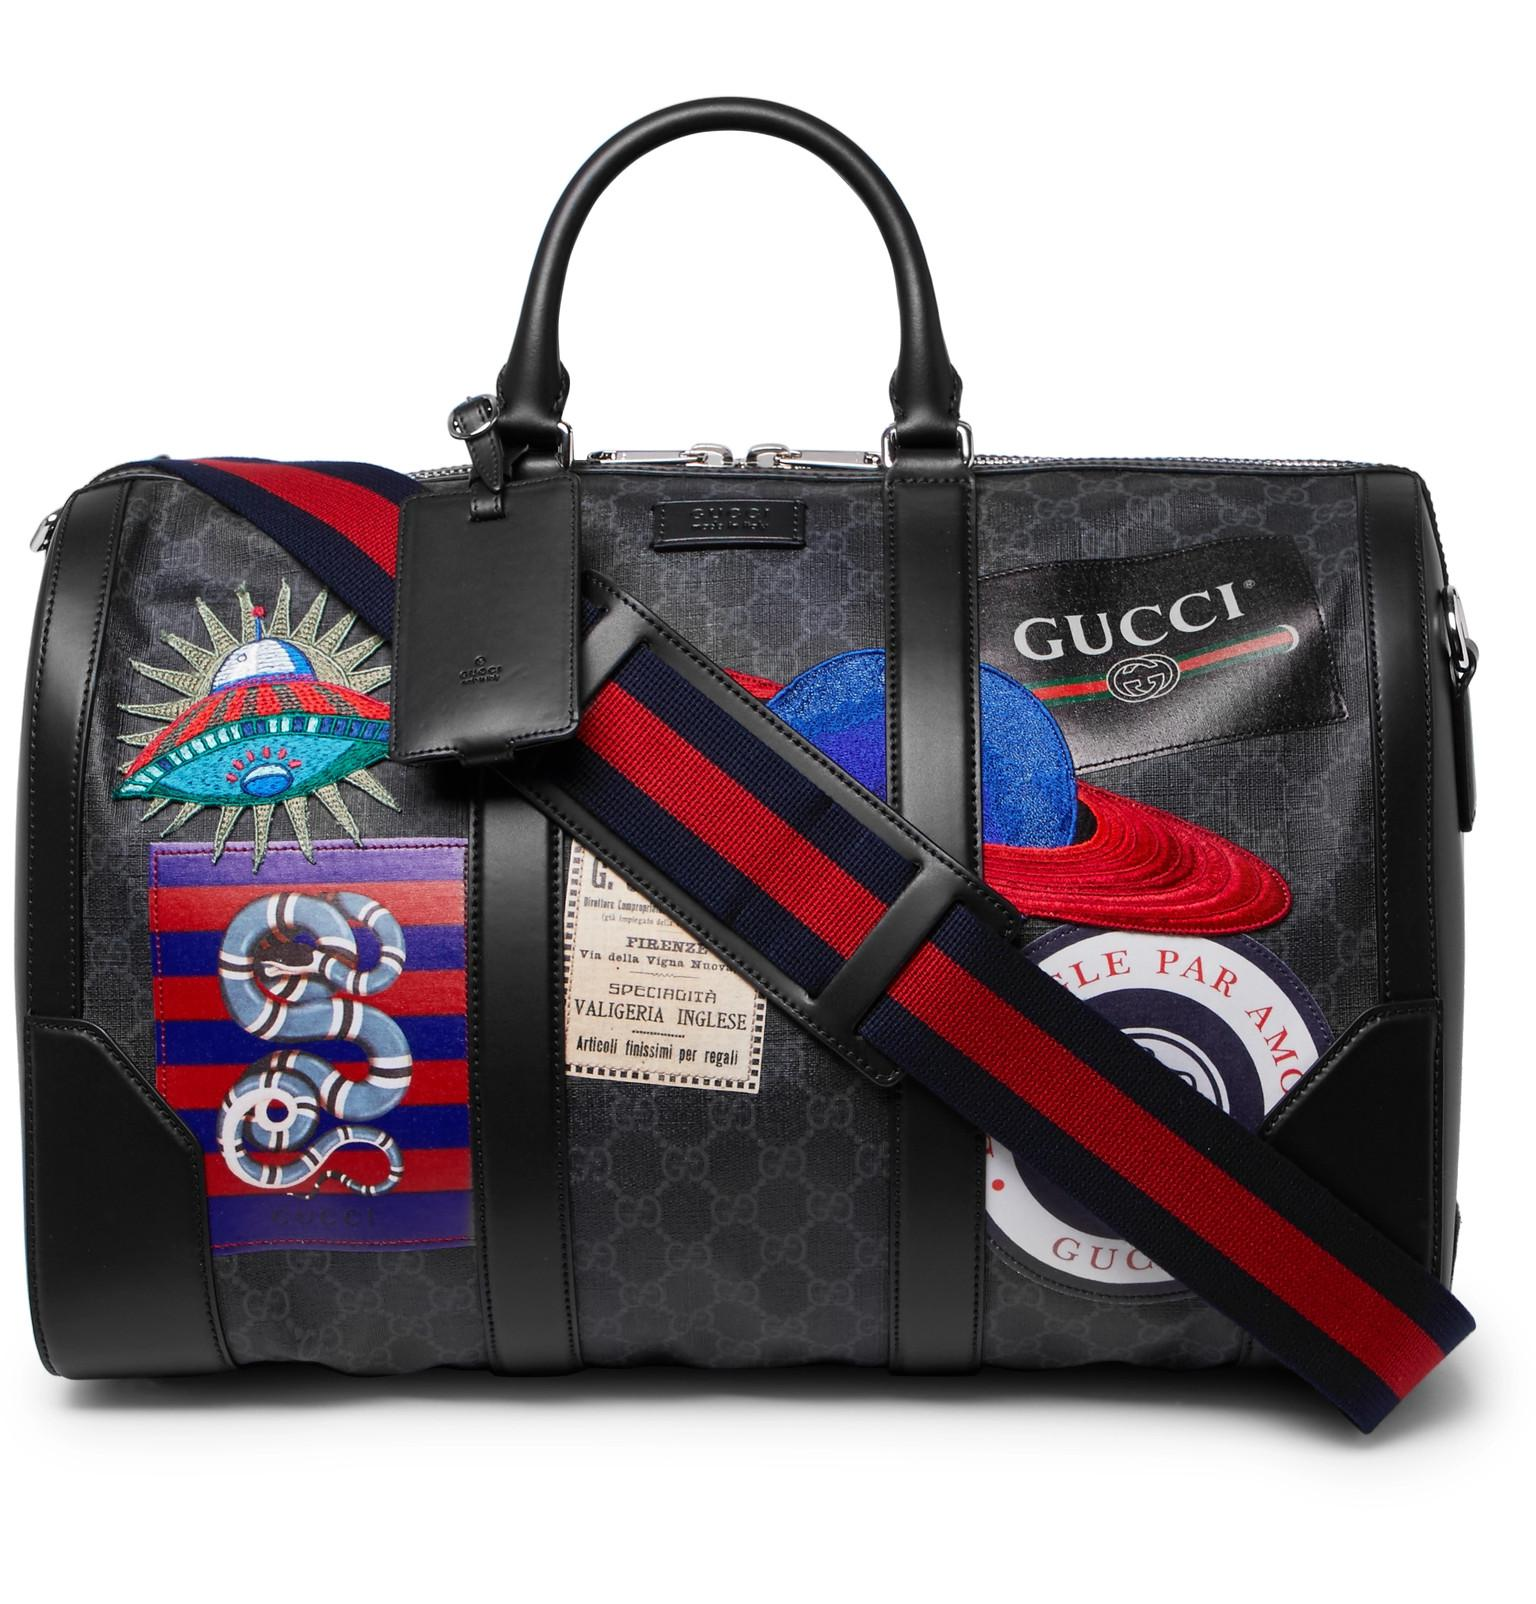 7749f8bb2 Gucci Night Courrier Leather-trimmed Appliquéd Monogrammed Coated ...